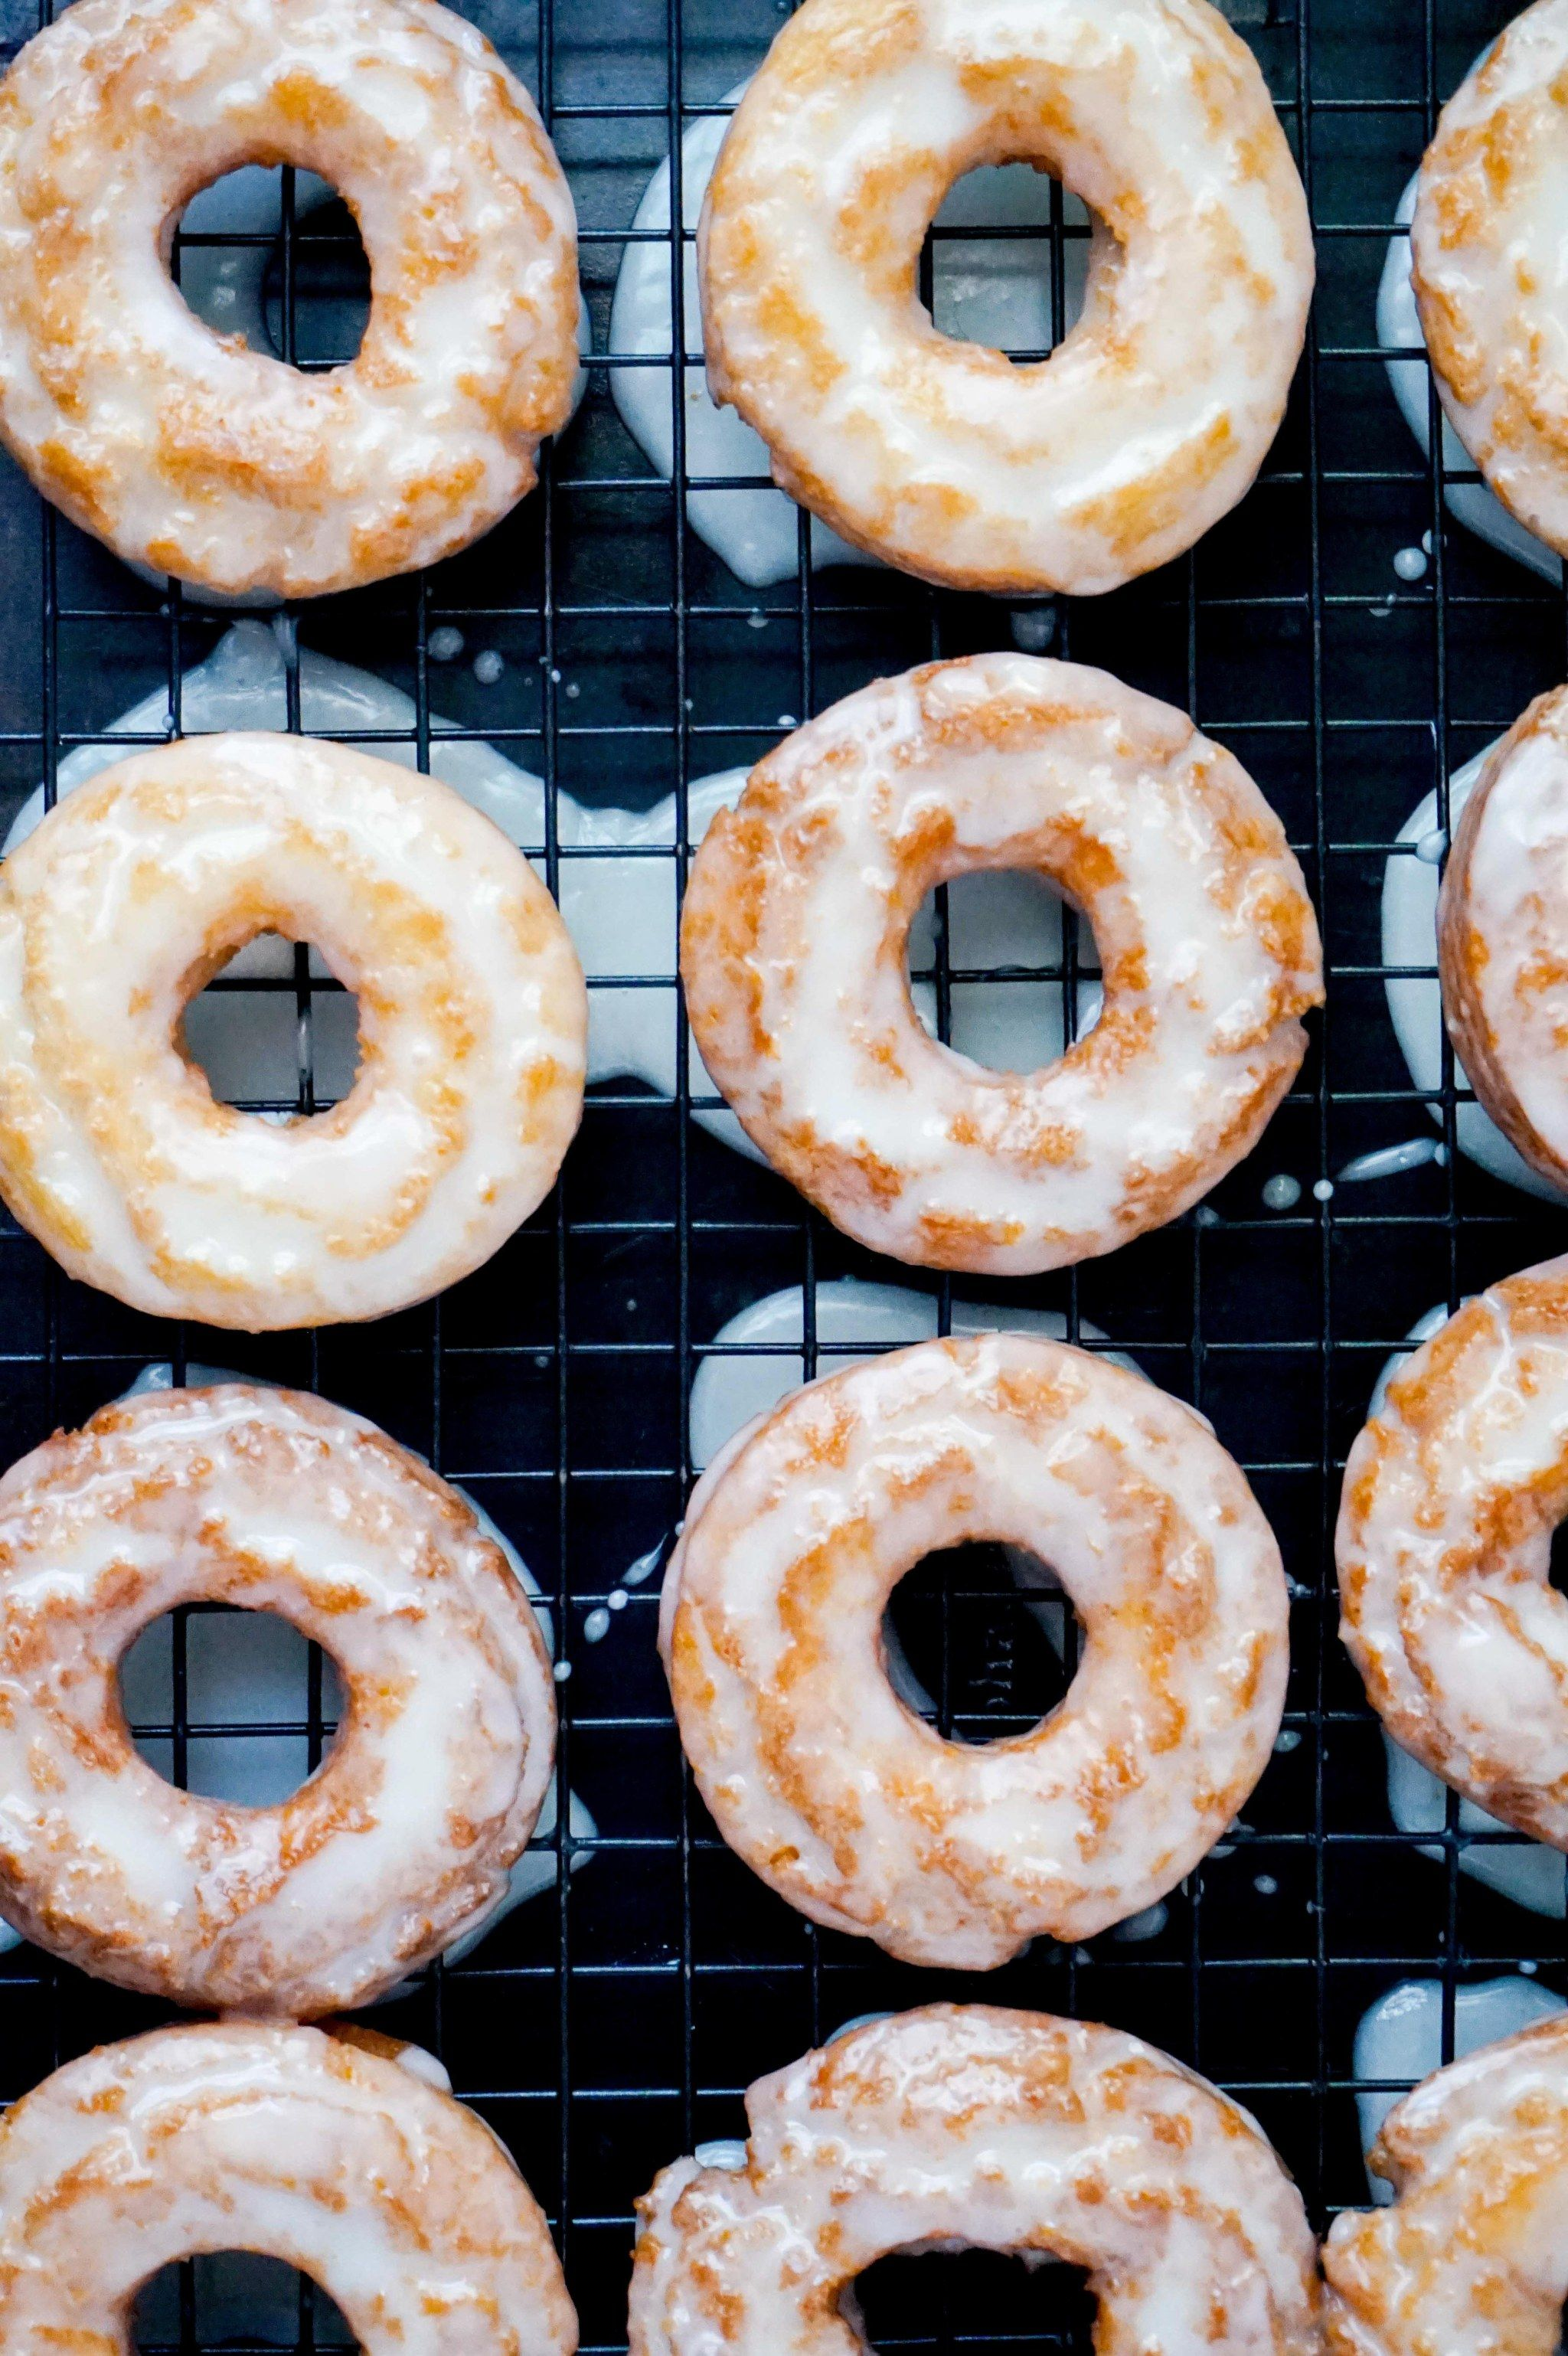 Forget Dunkin This Sour Cream Donut Recipe Is Giving Us Life Sour Cream Donut Cream Donut Recipe Dunkin Donuts Copycat Recipe